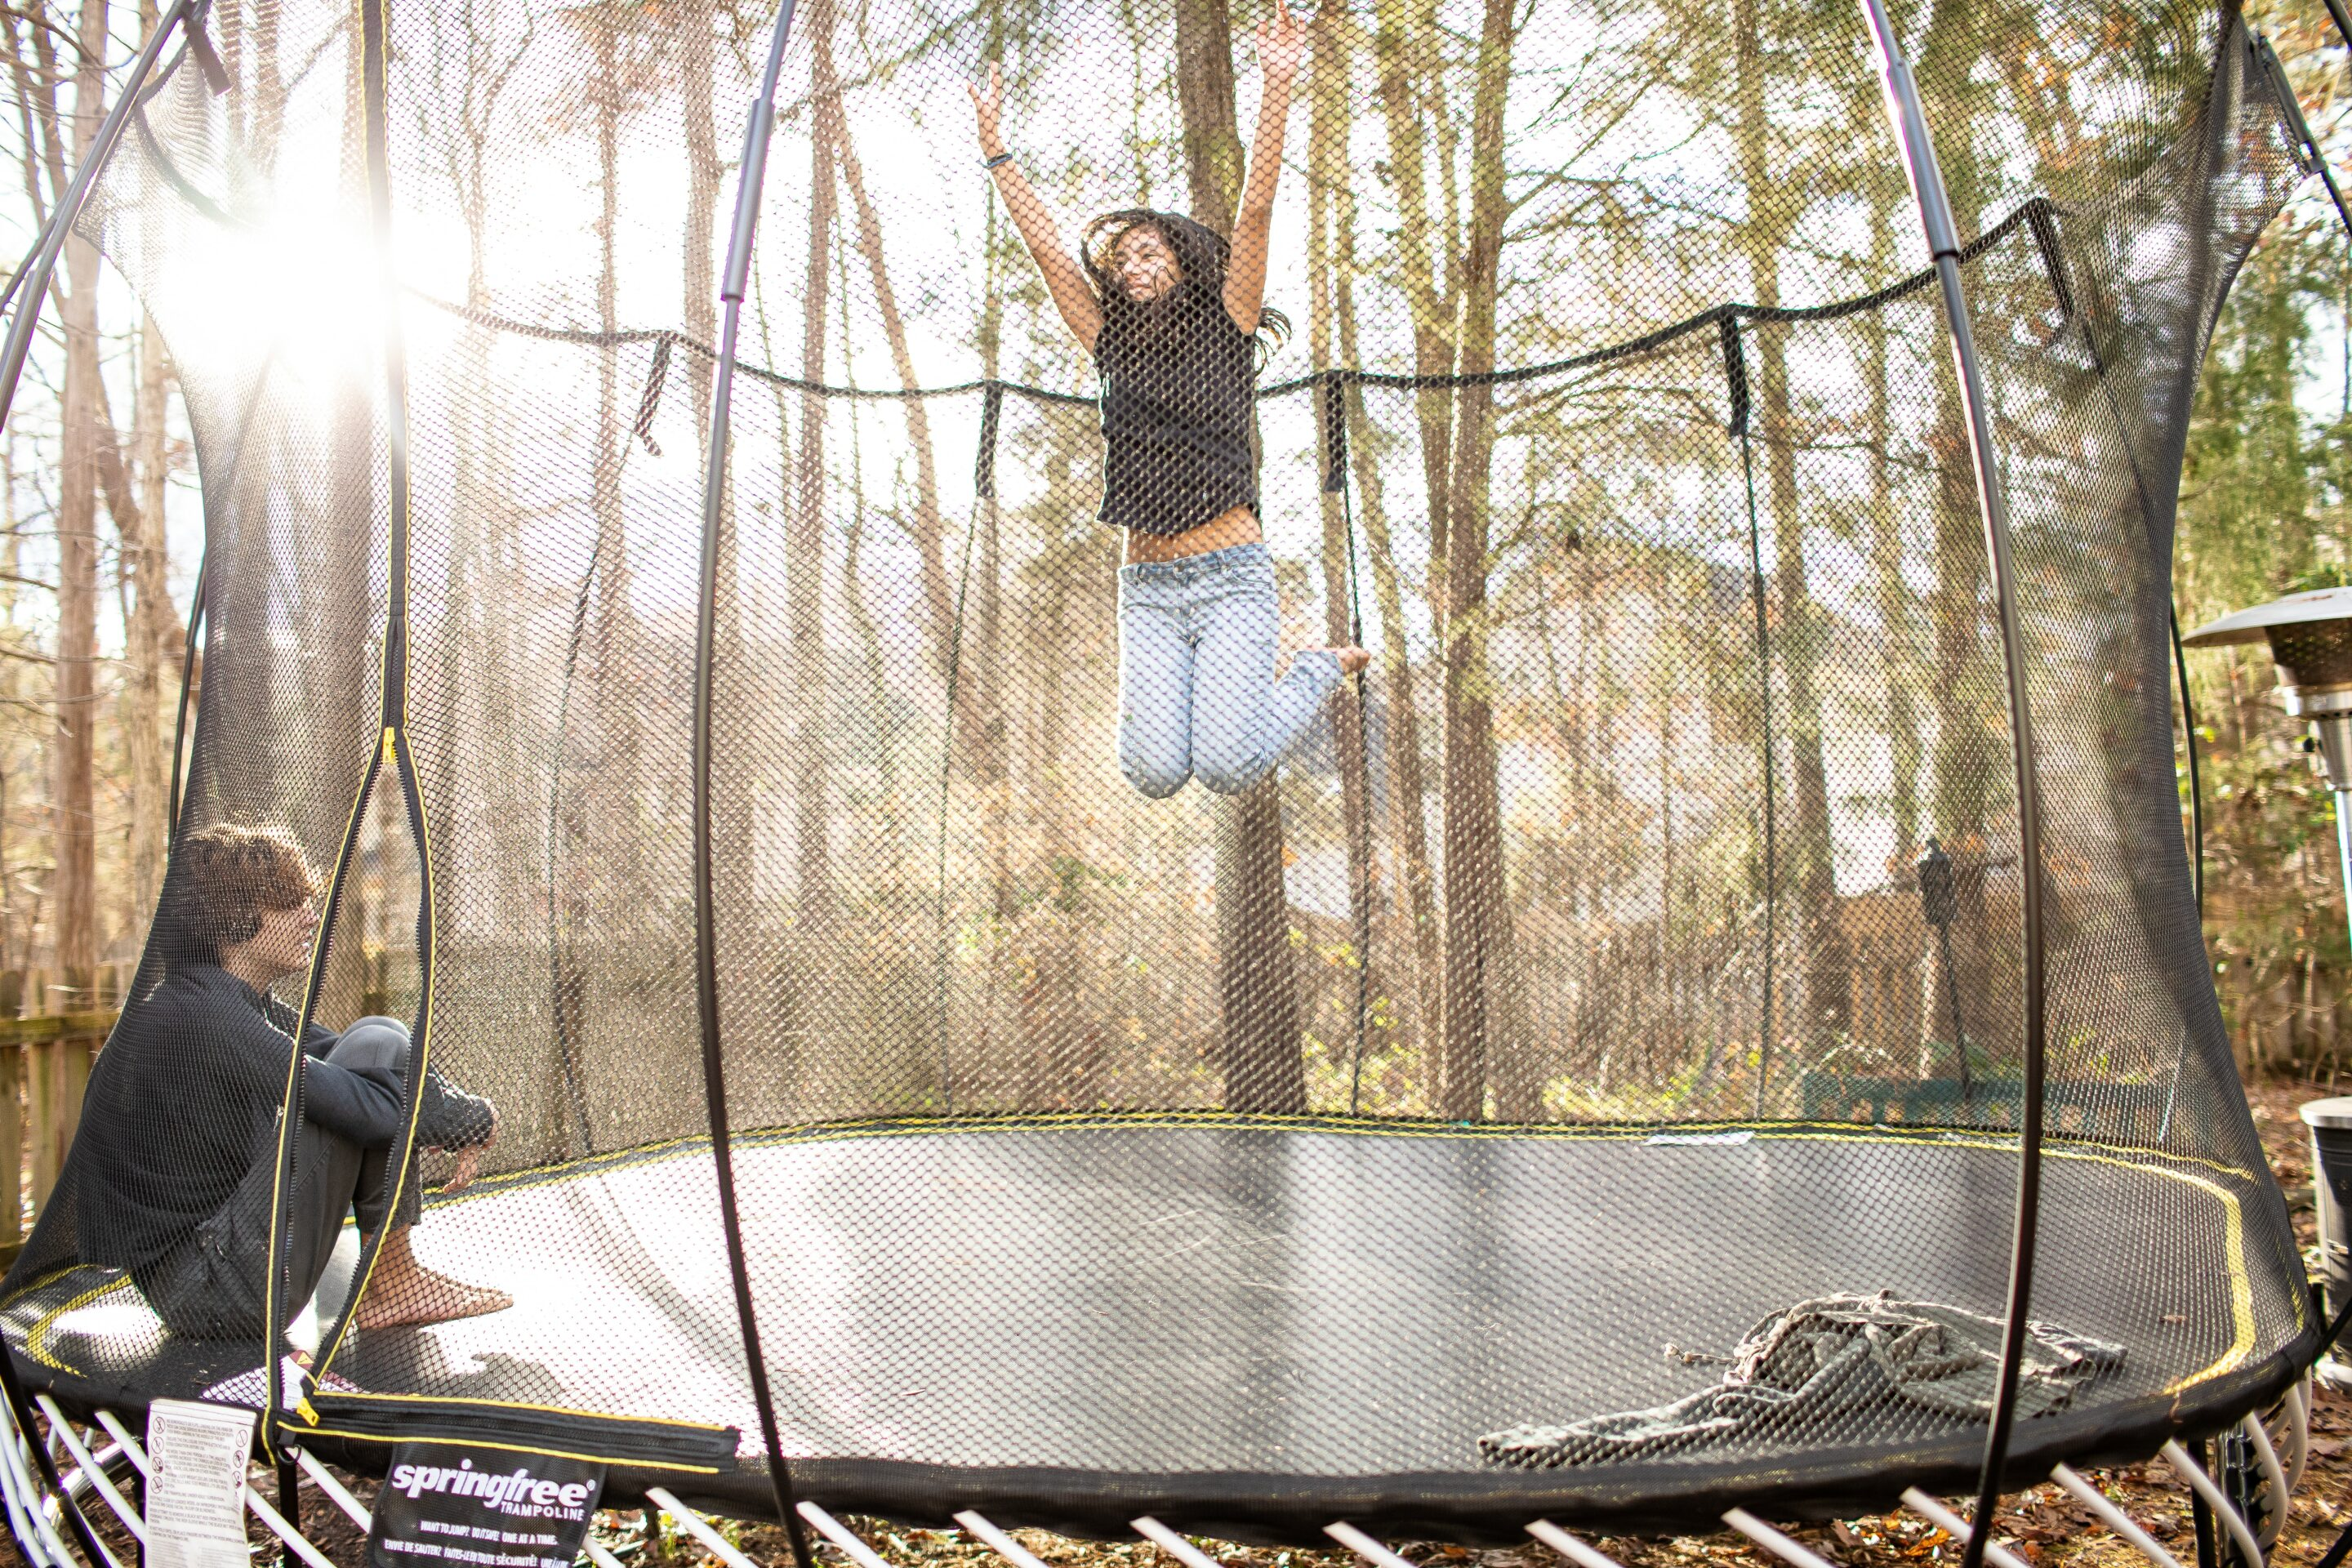 Trampolines – All Fun and Games?